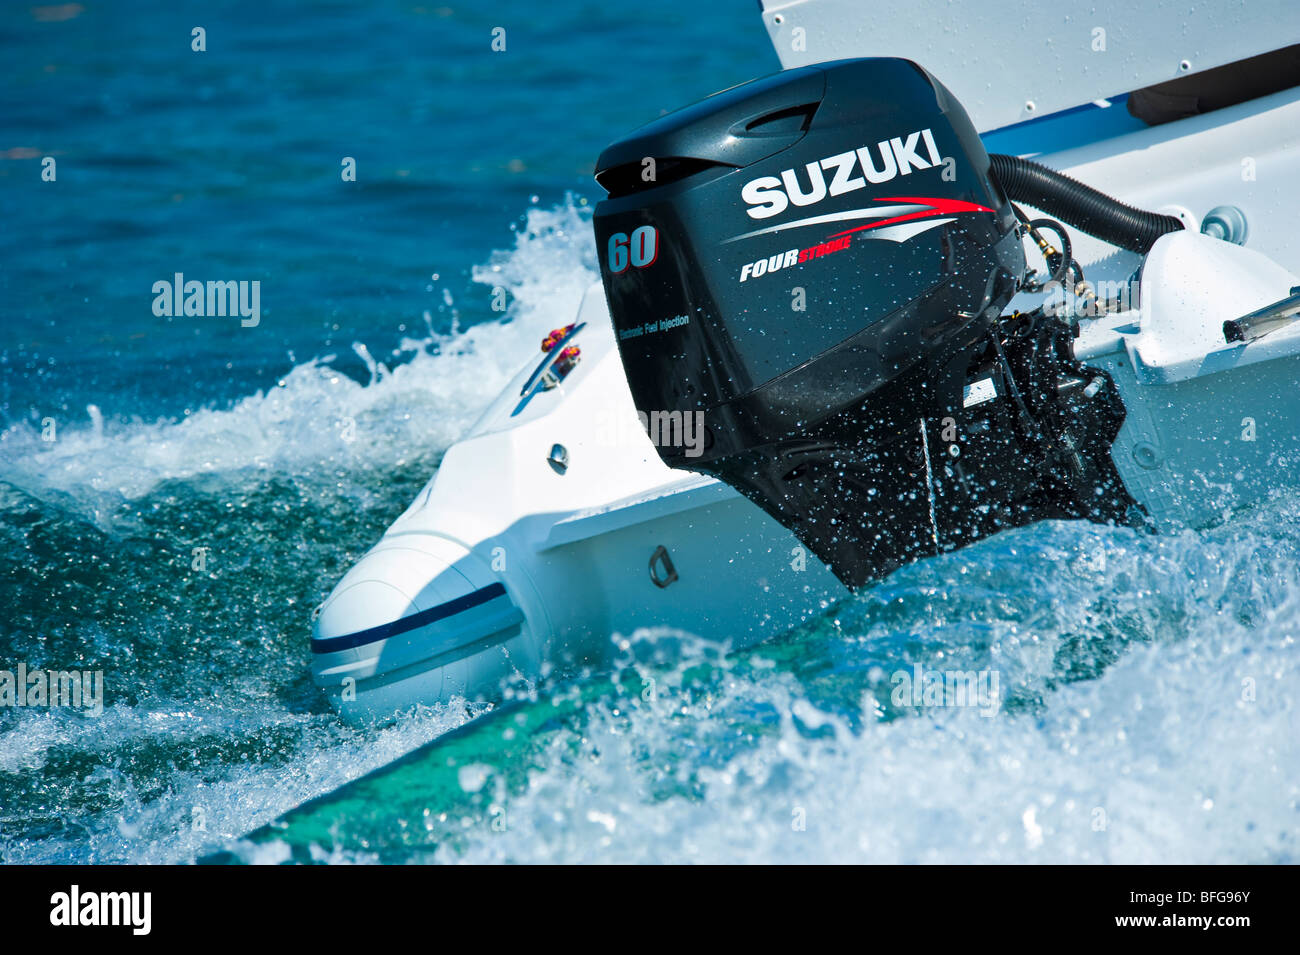 New 2009 model of Suzuki DF 60 outboard engine on power boat transom -  Stock Image